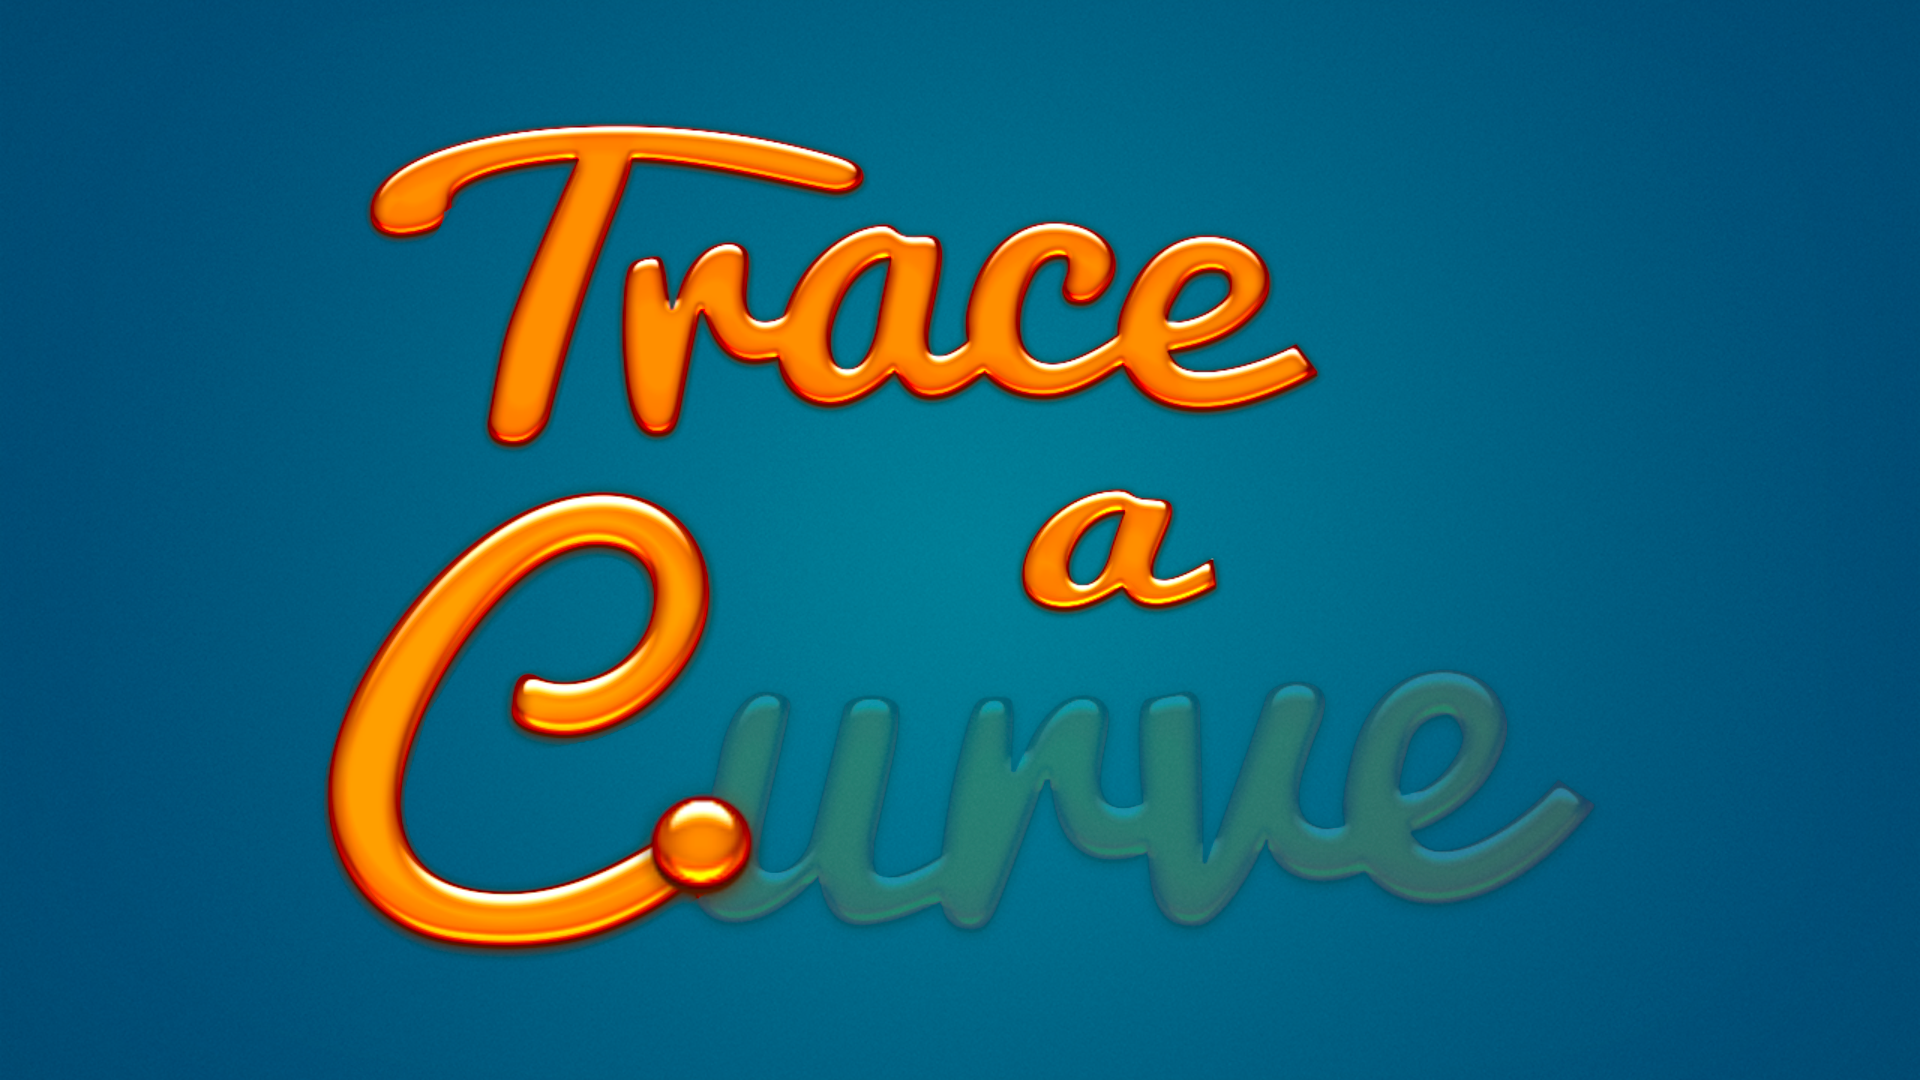 Released] Tracing And Writing - Create Interactive Books Or